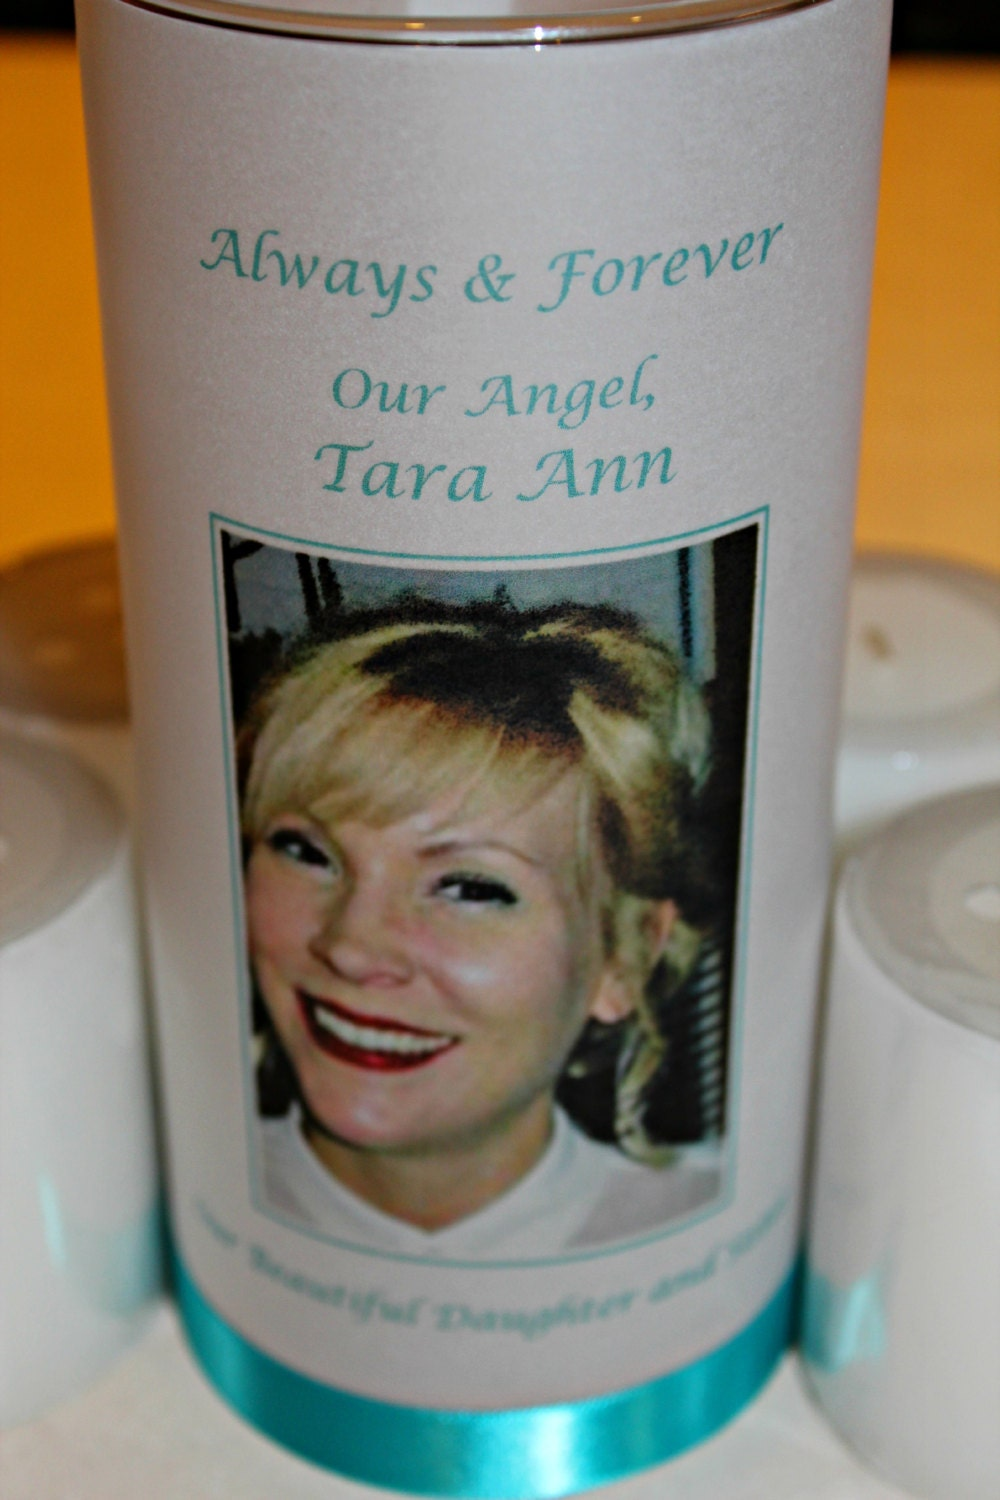 Memorial Candle Funeral Candle Wedding Candle Celebration